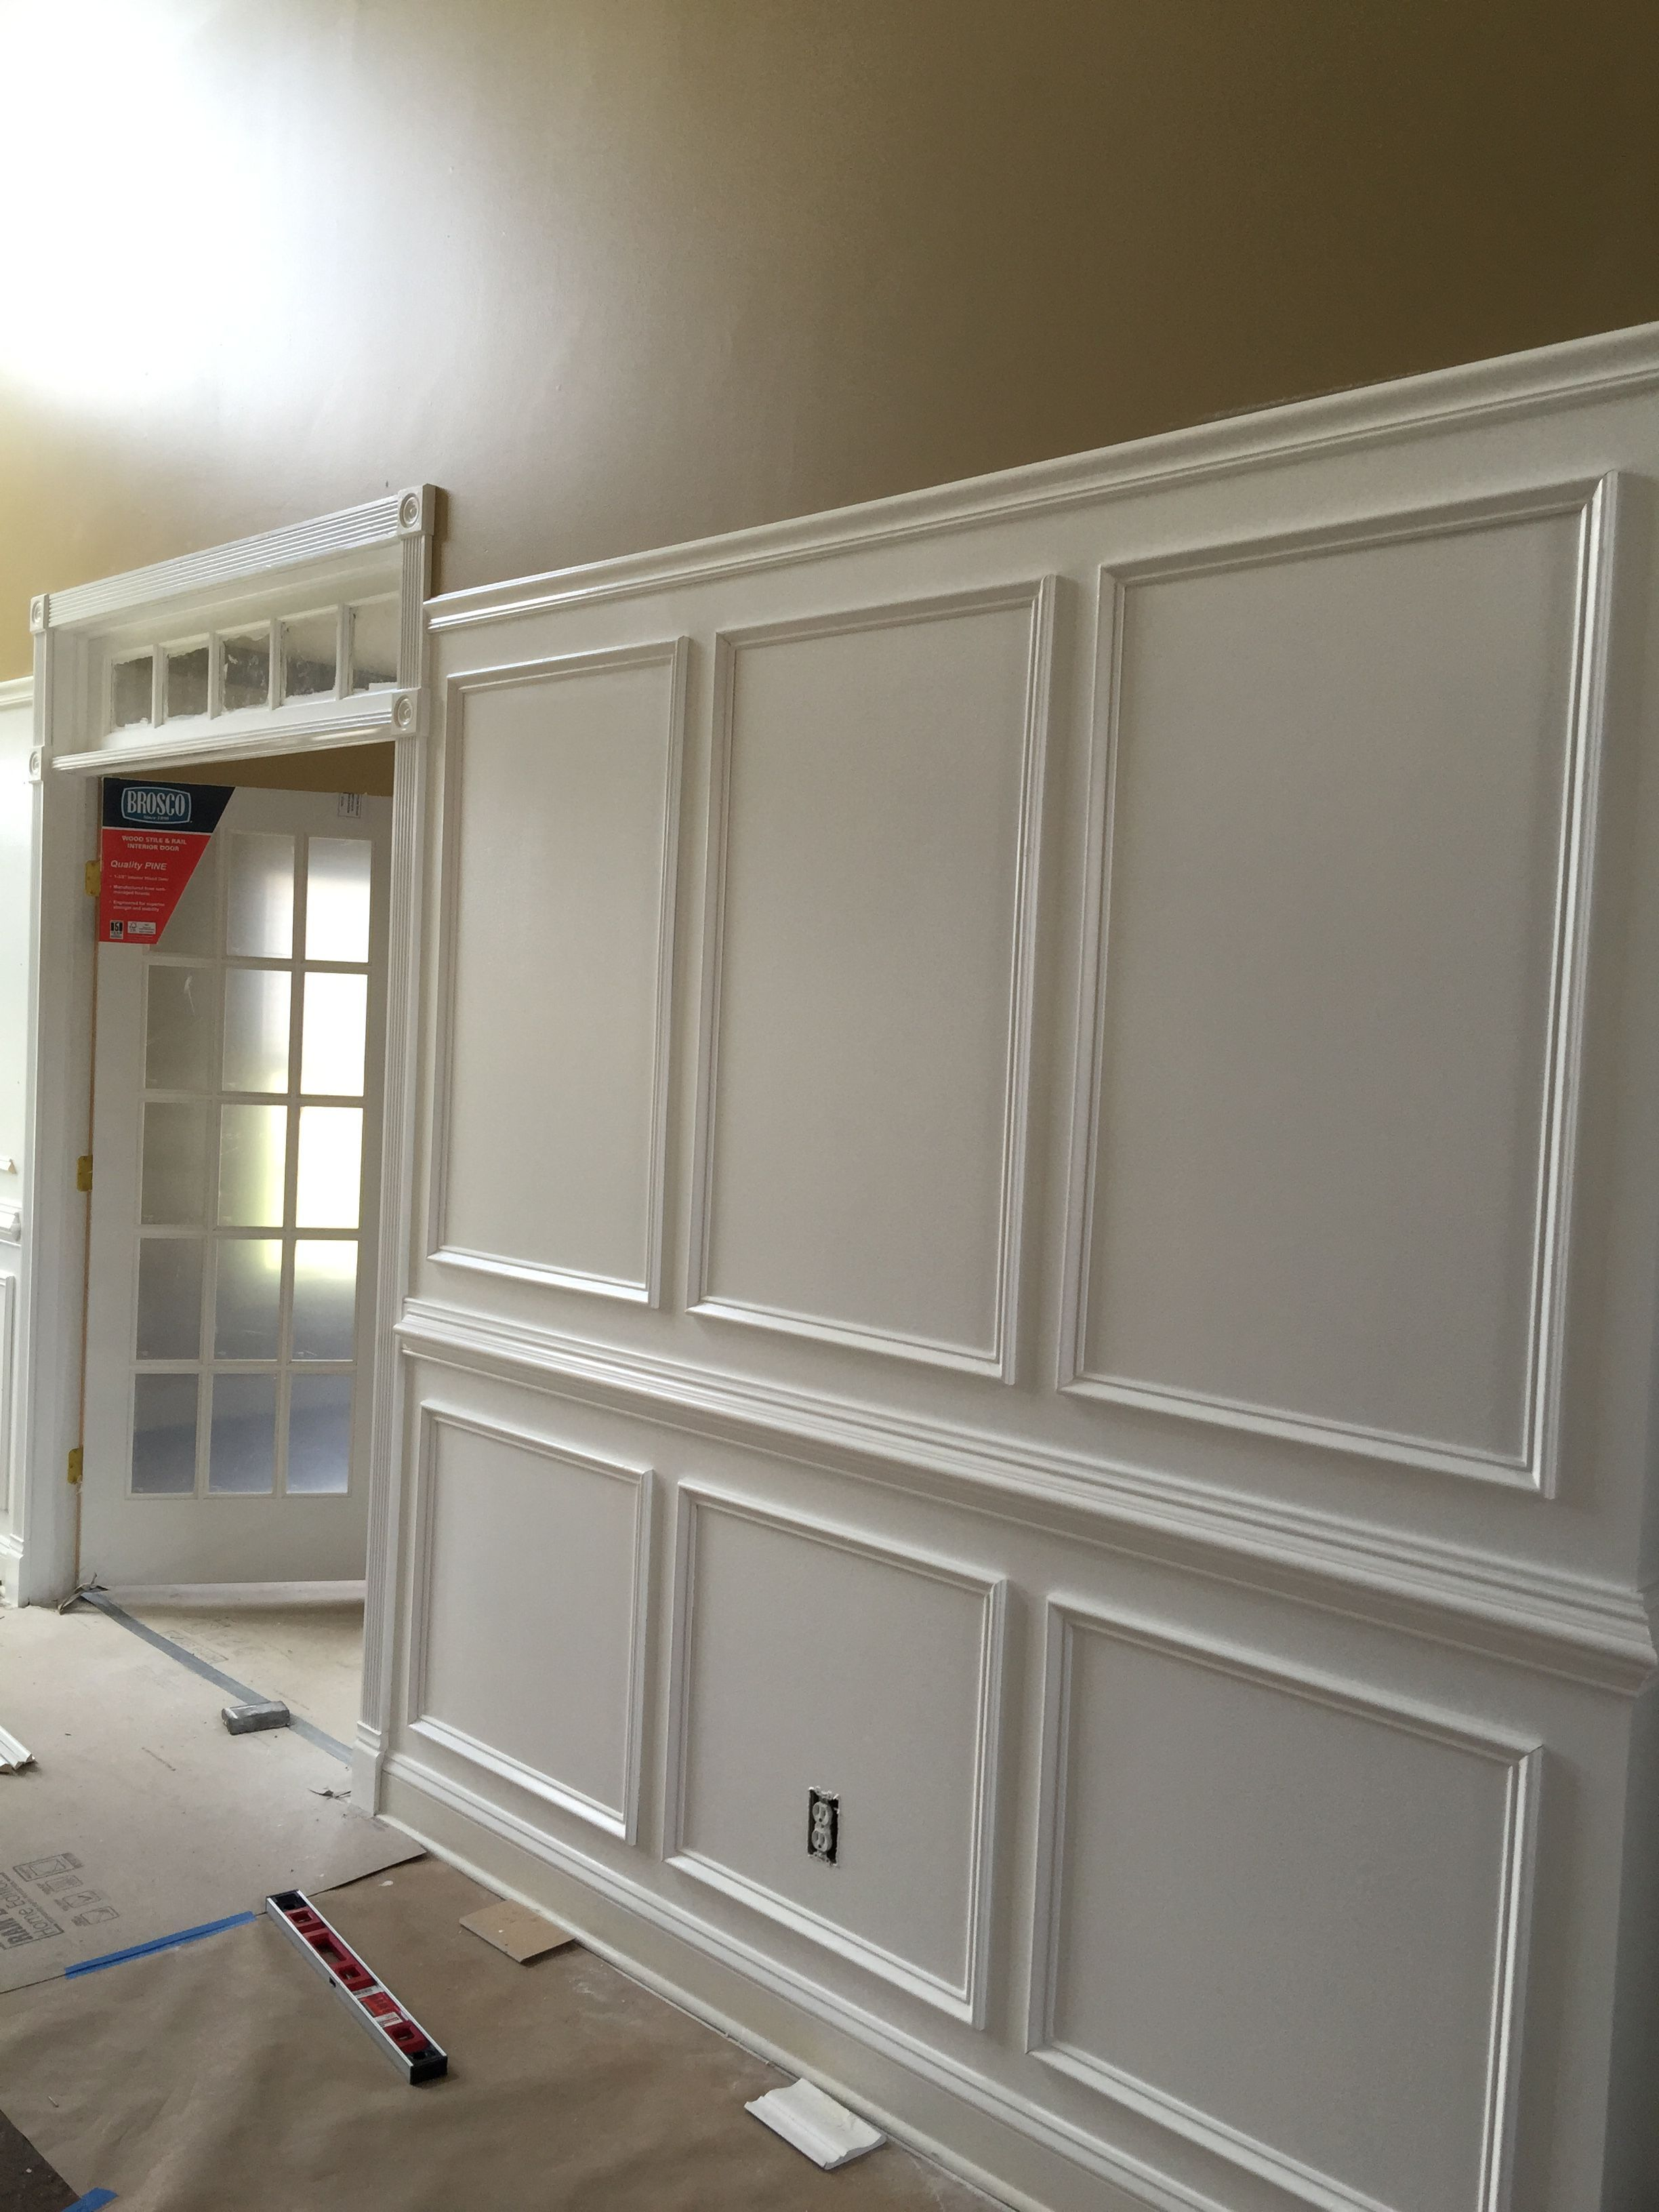 Diy Wainscoting Using Chair Rail And Trim And Picture Frame Moulding Semi Gloss Bright White Paint Ad Wainscoting Height Diy Wainscoting Wainscoting Styles